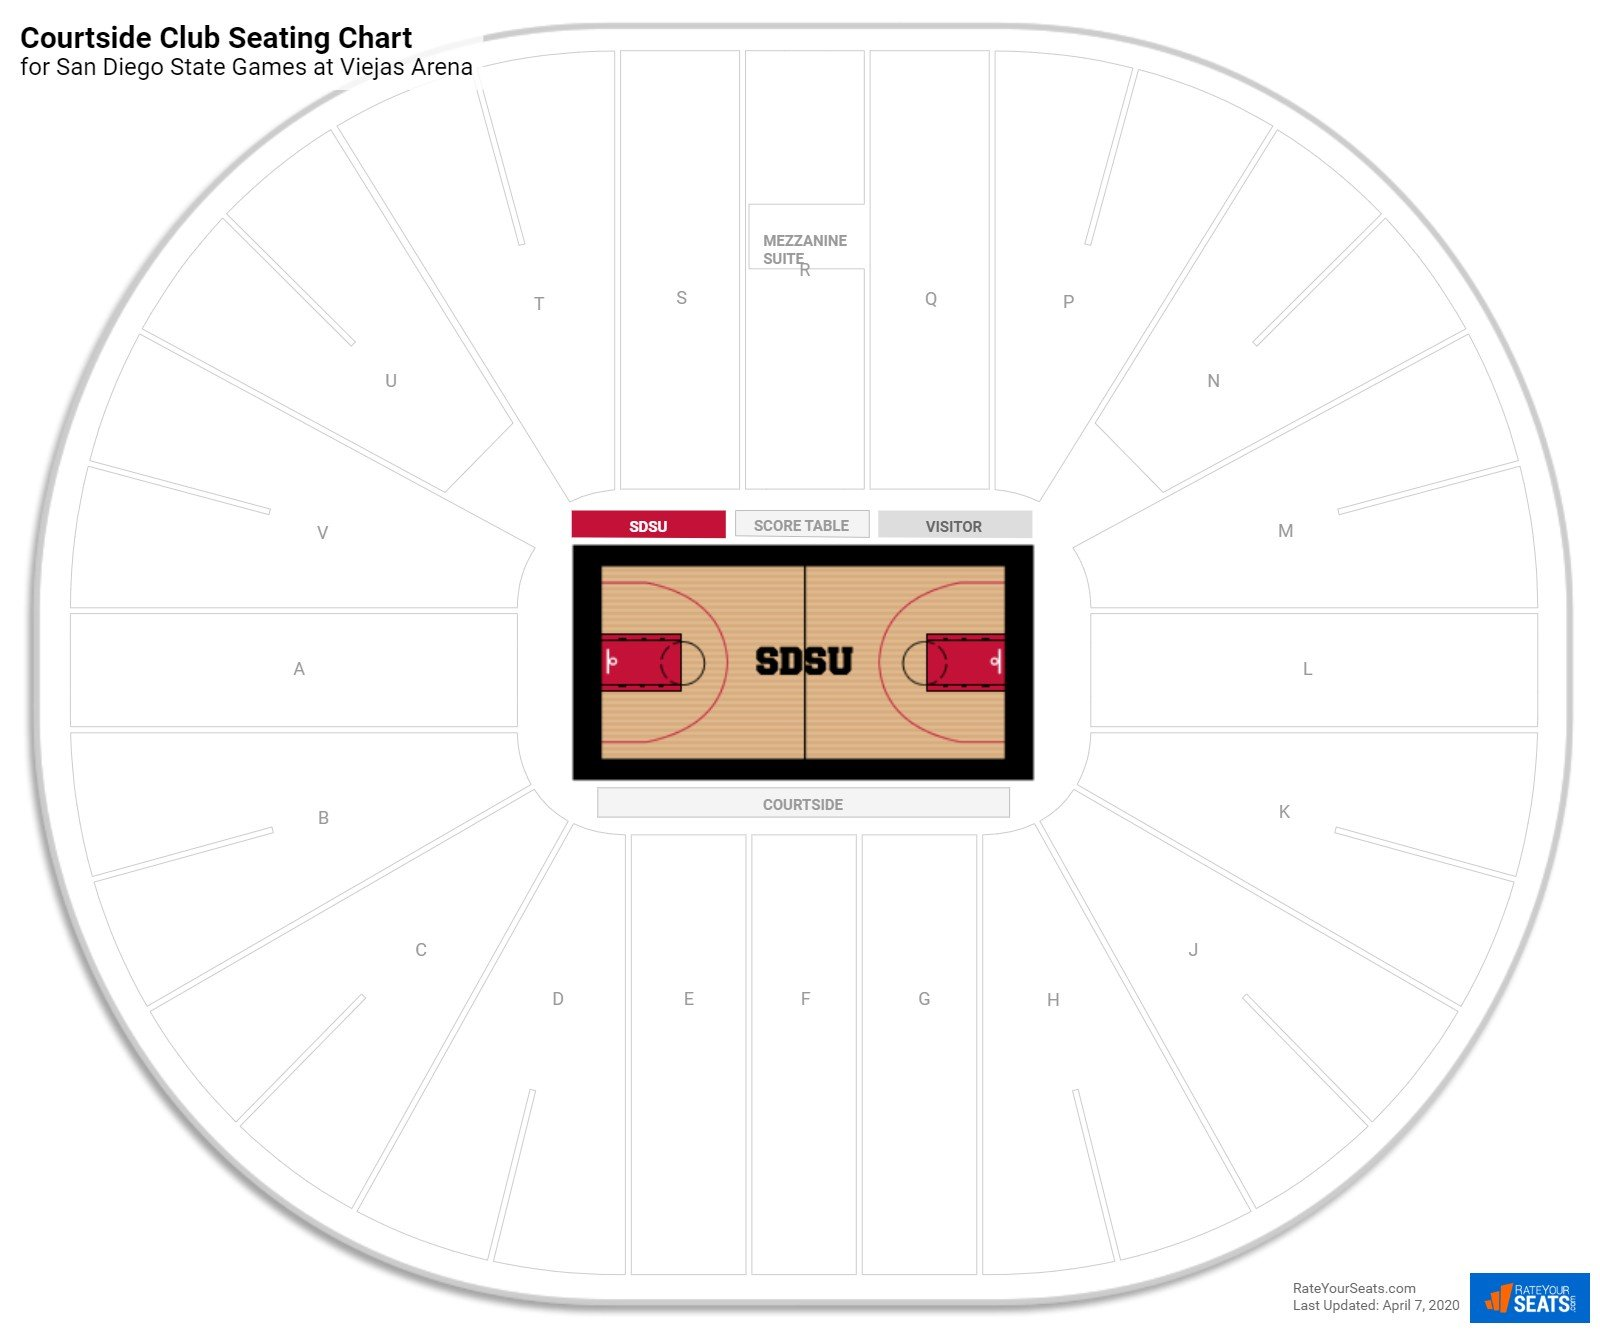 Viejas Arena Courtside Club seating chart